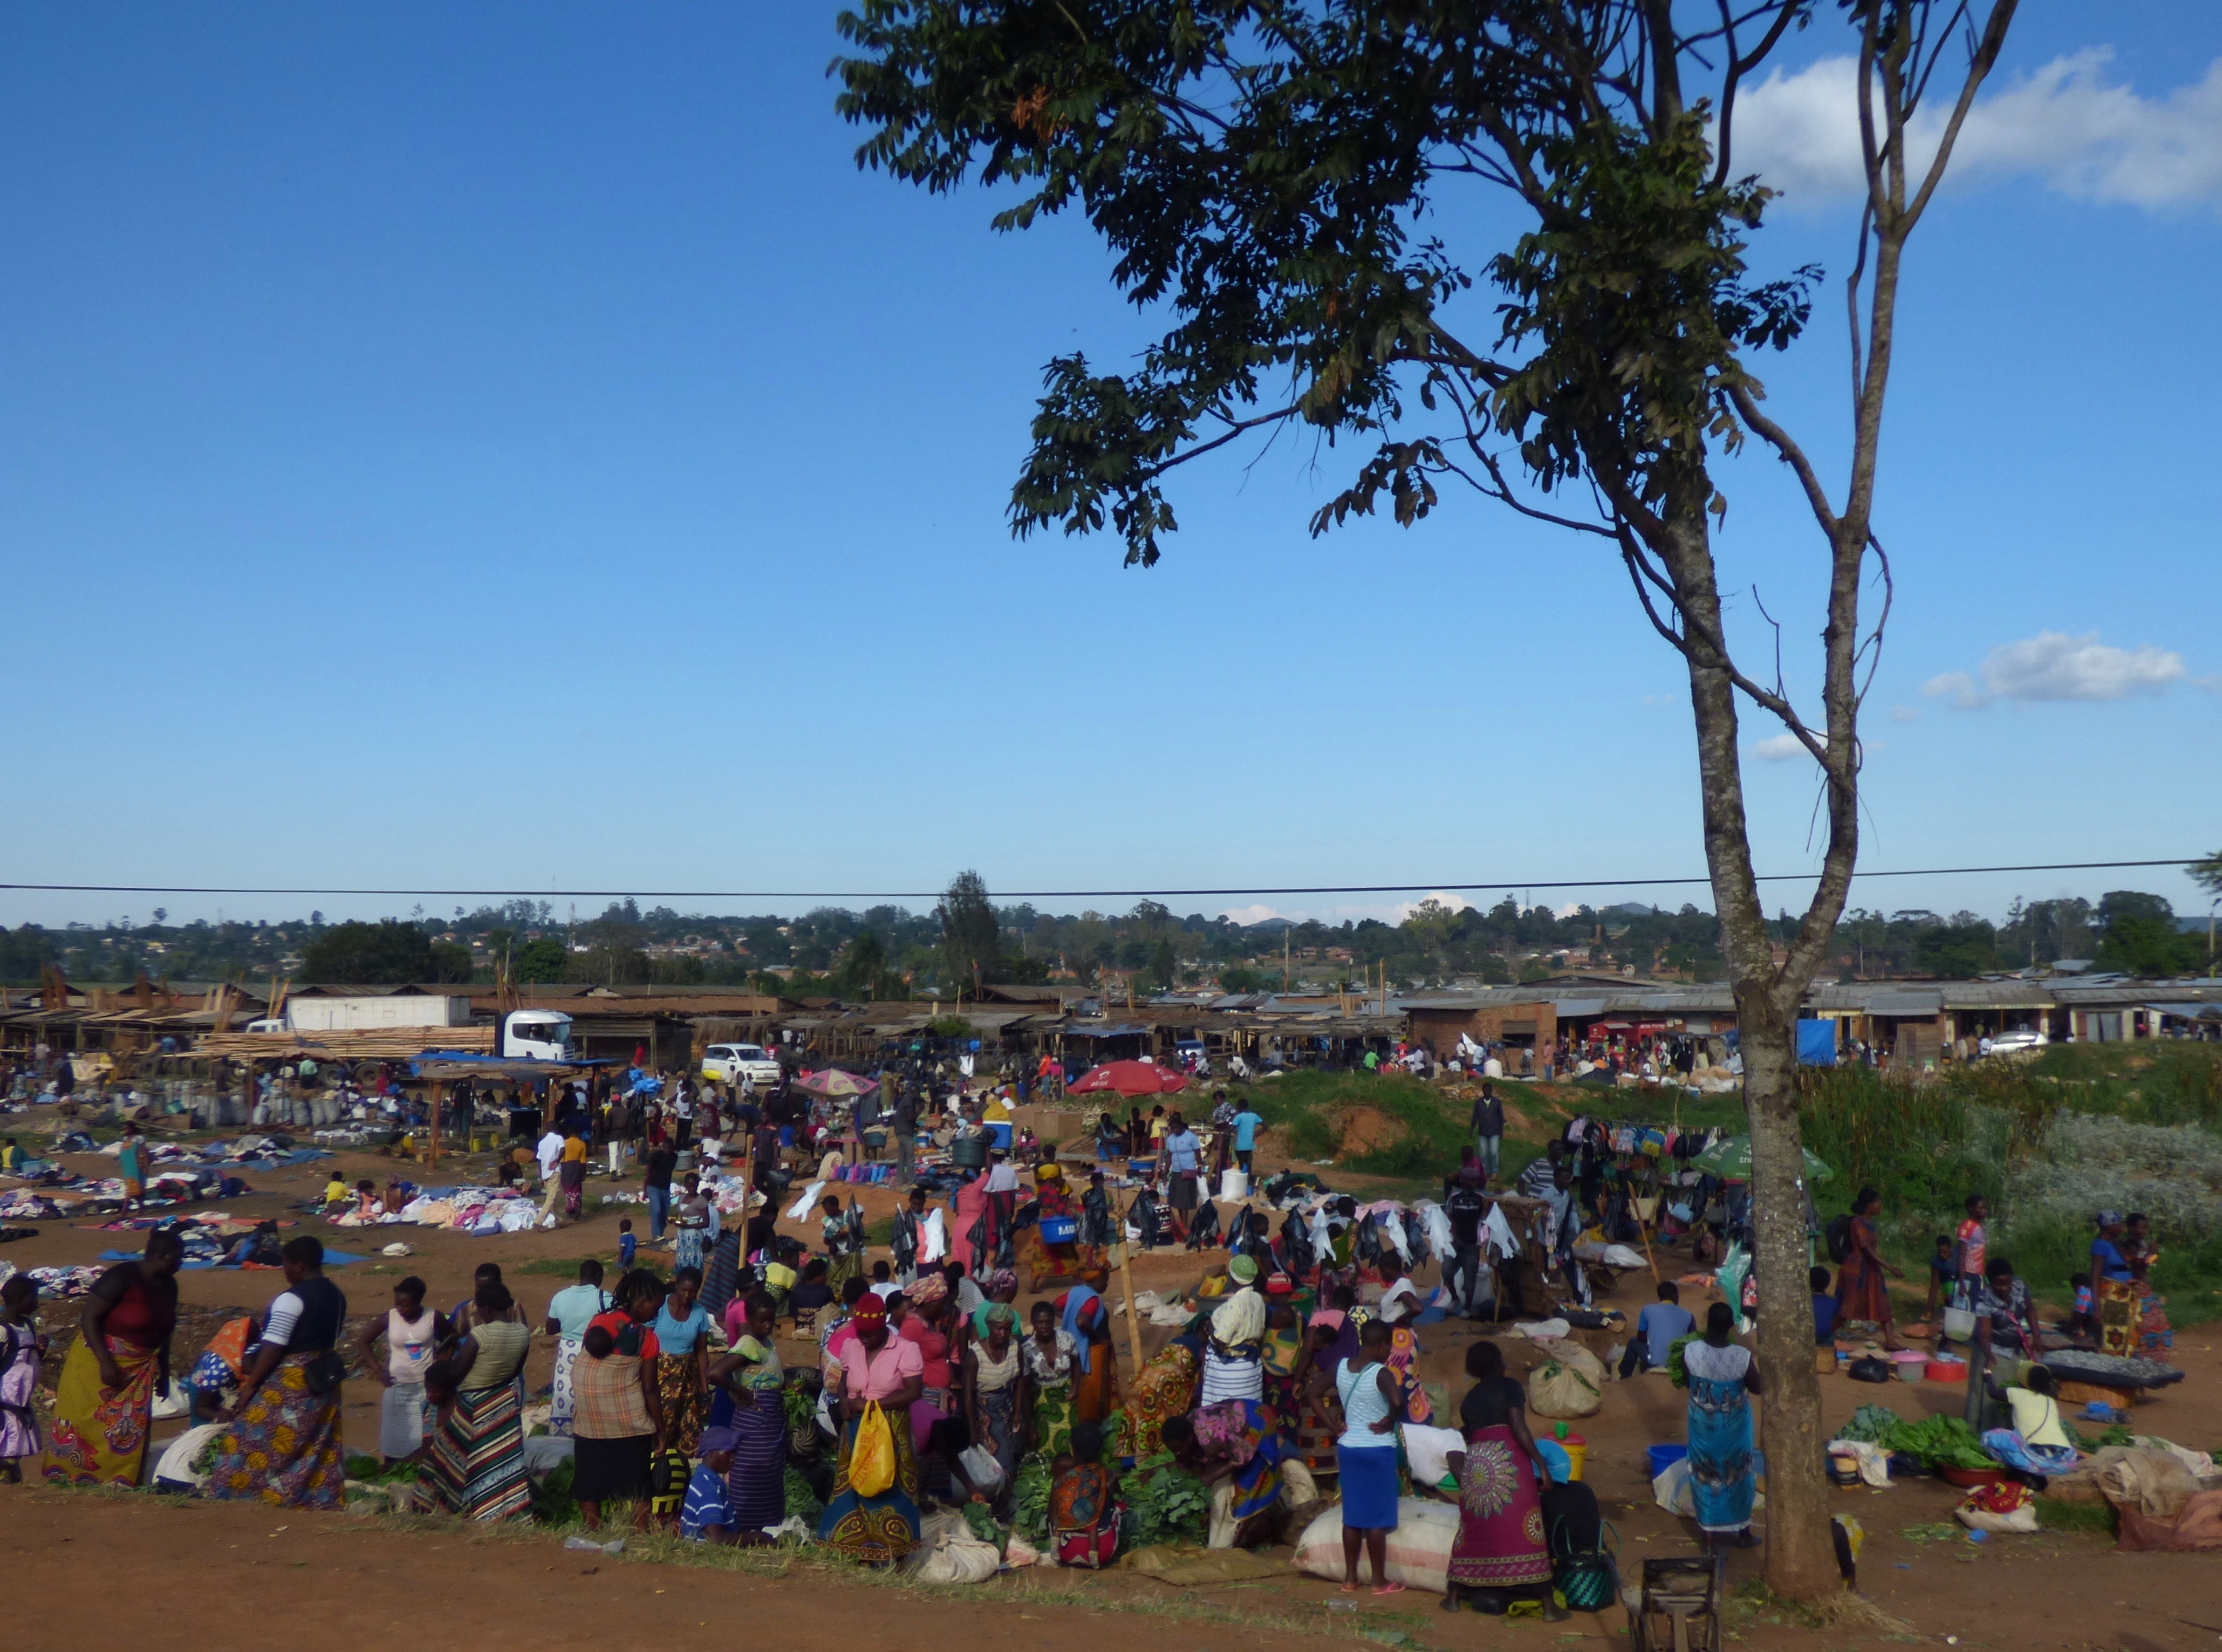 How is Mzuzu: people at the market